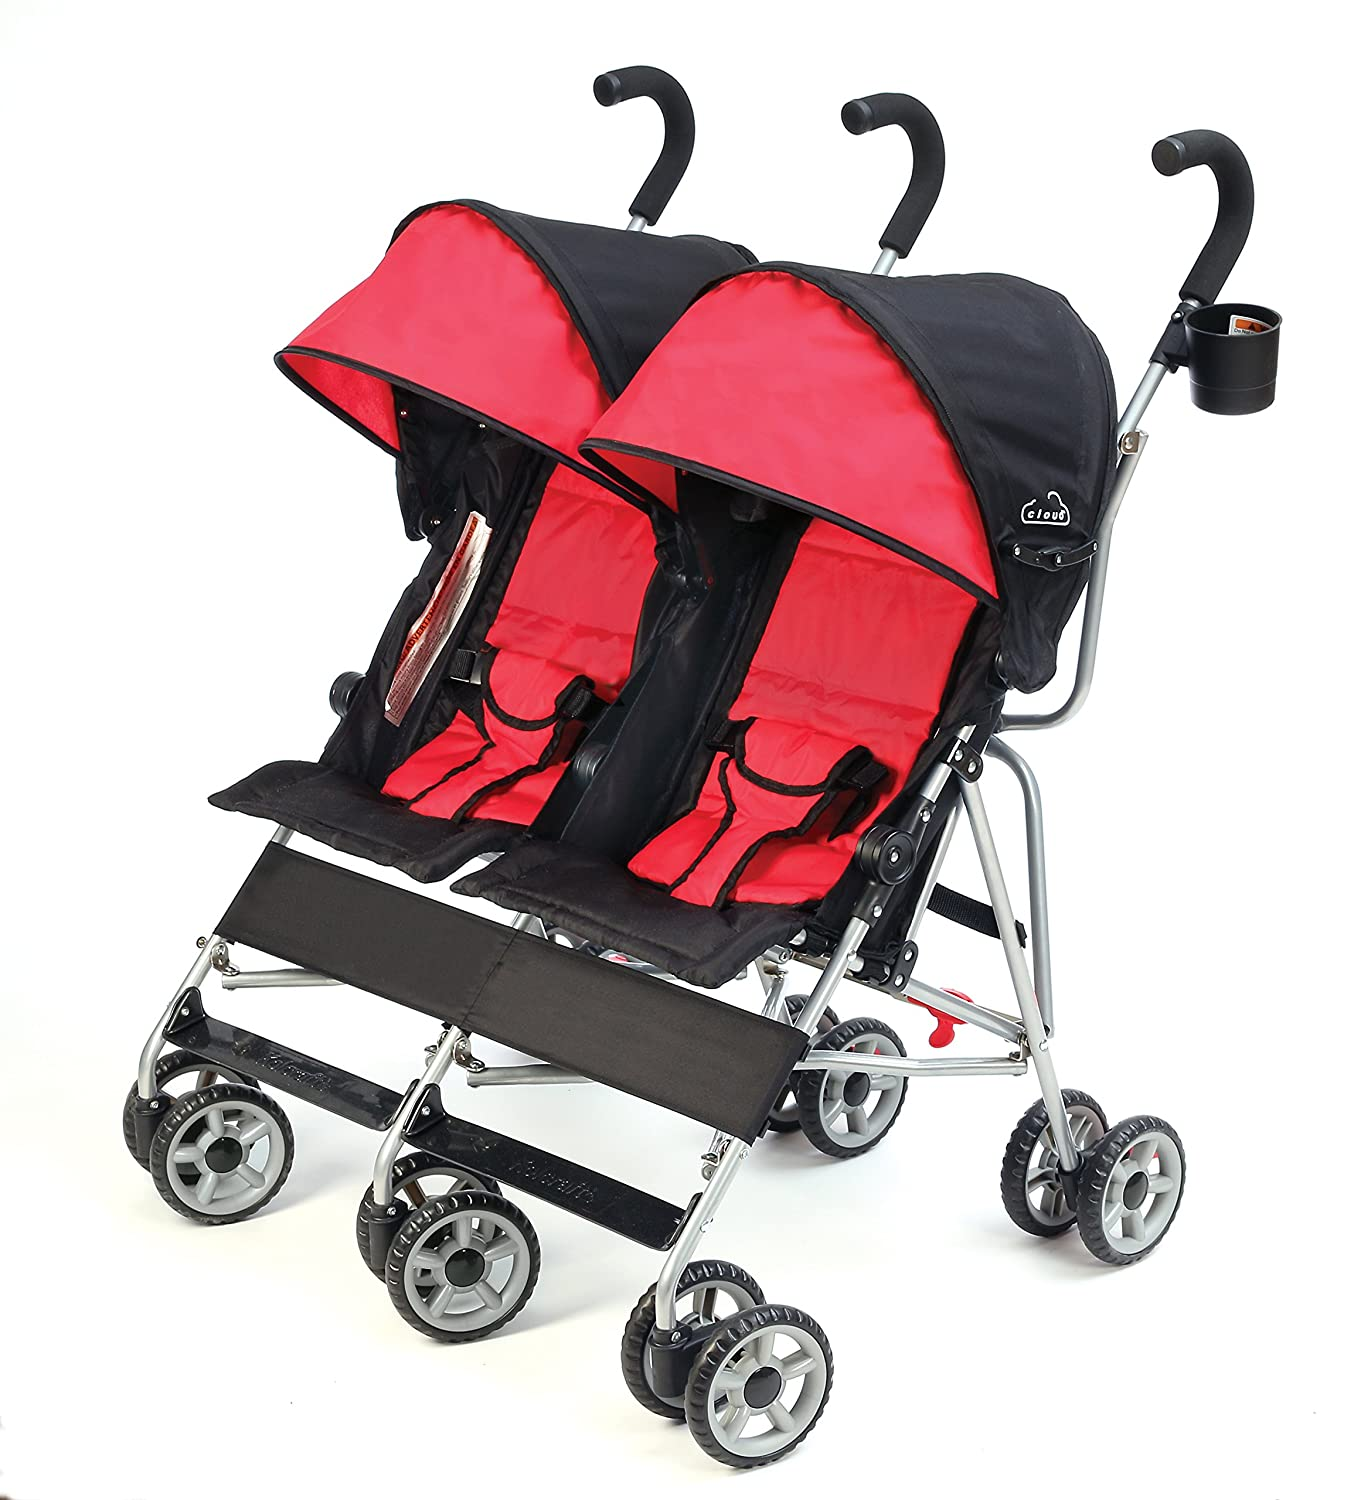 Top 7 Best Lightweight Strollers Reviews in 2019 2